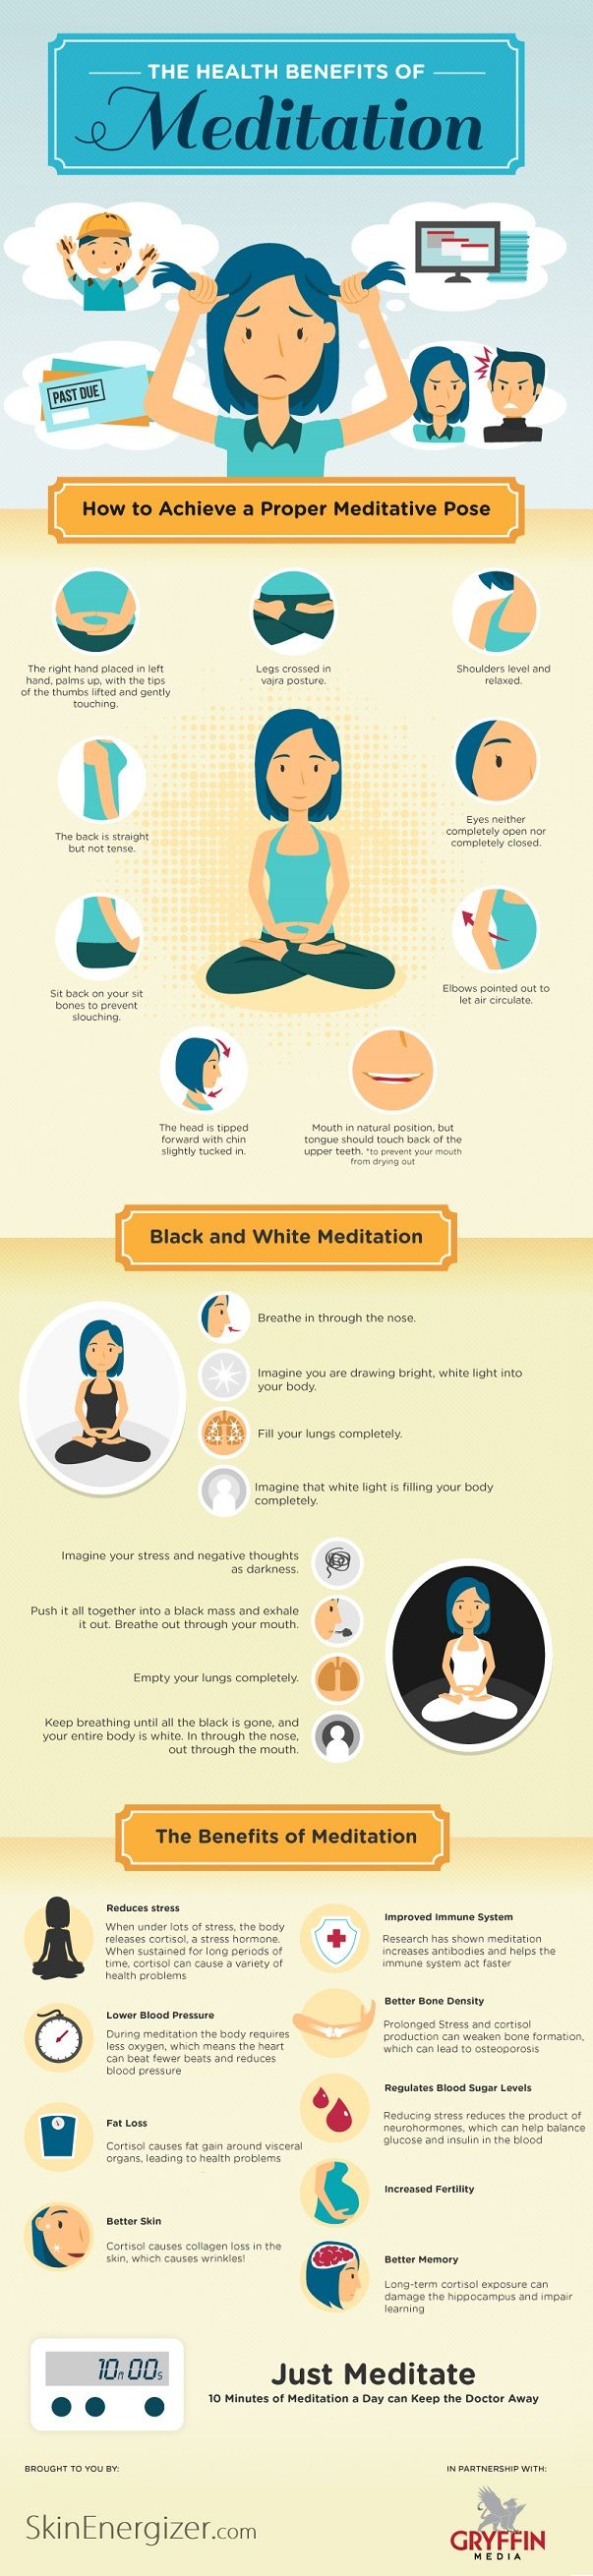 The Health Benefits of Meditation. I need to do this more often